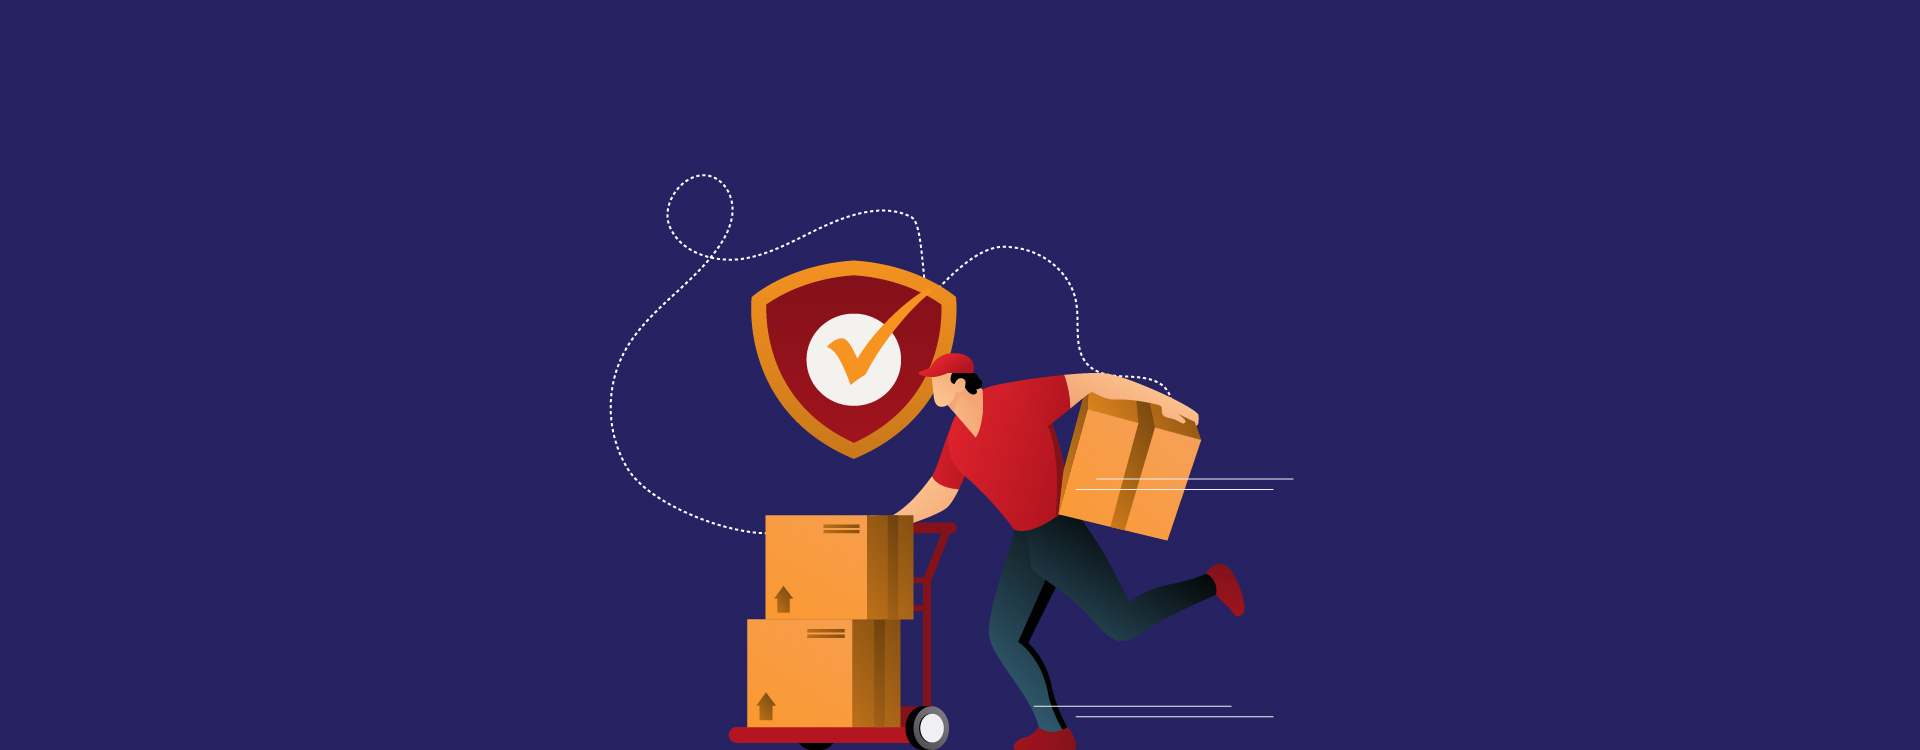 The express delivery is being explored by food and pharma apps for faster delivery.